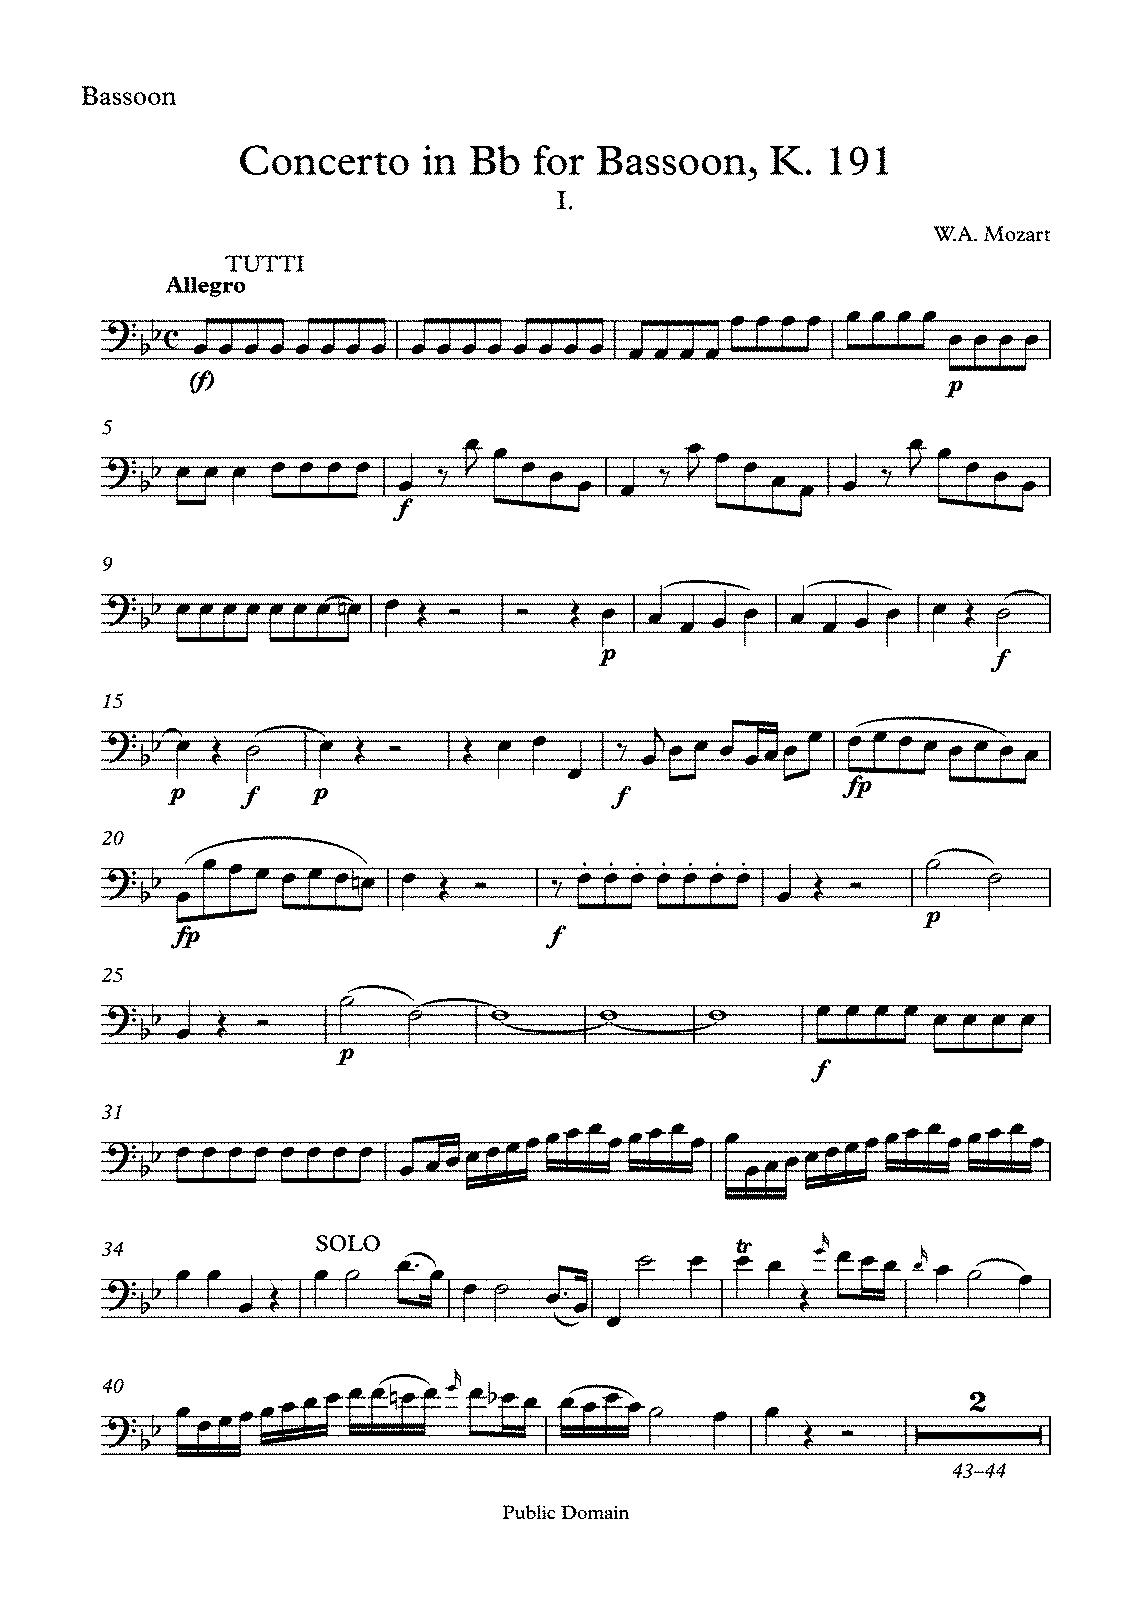 PMLP04337-Concerto in Bb for Bassoon, K 191 - Bassoon.pdf